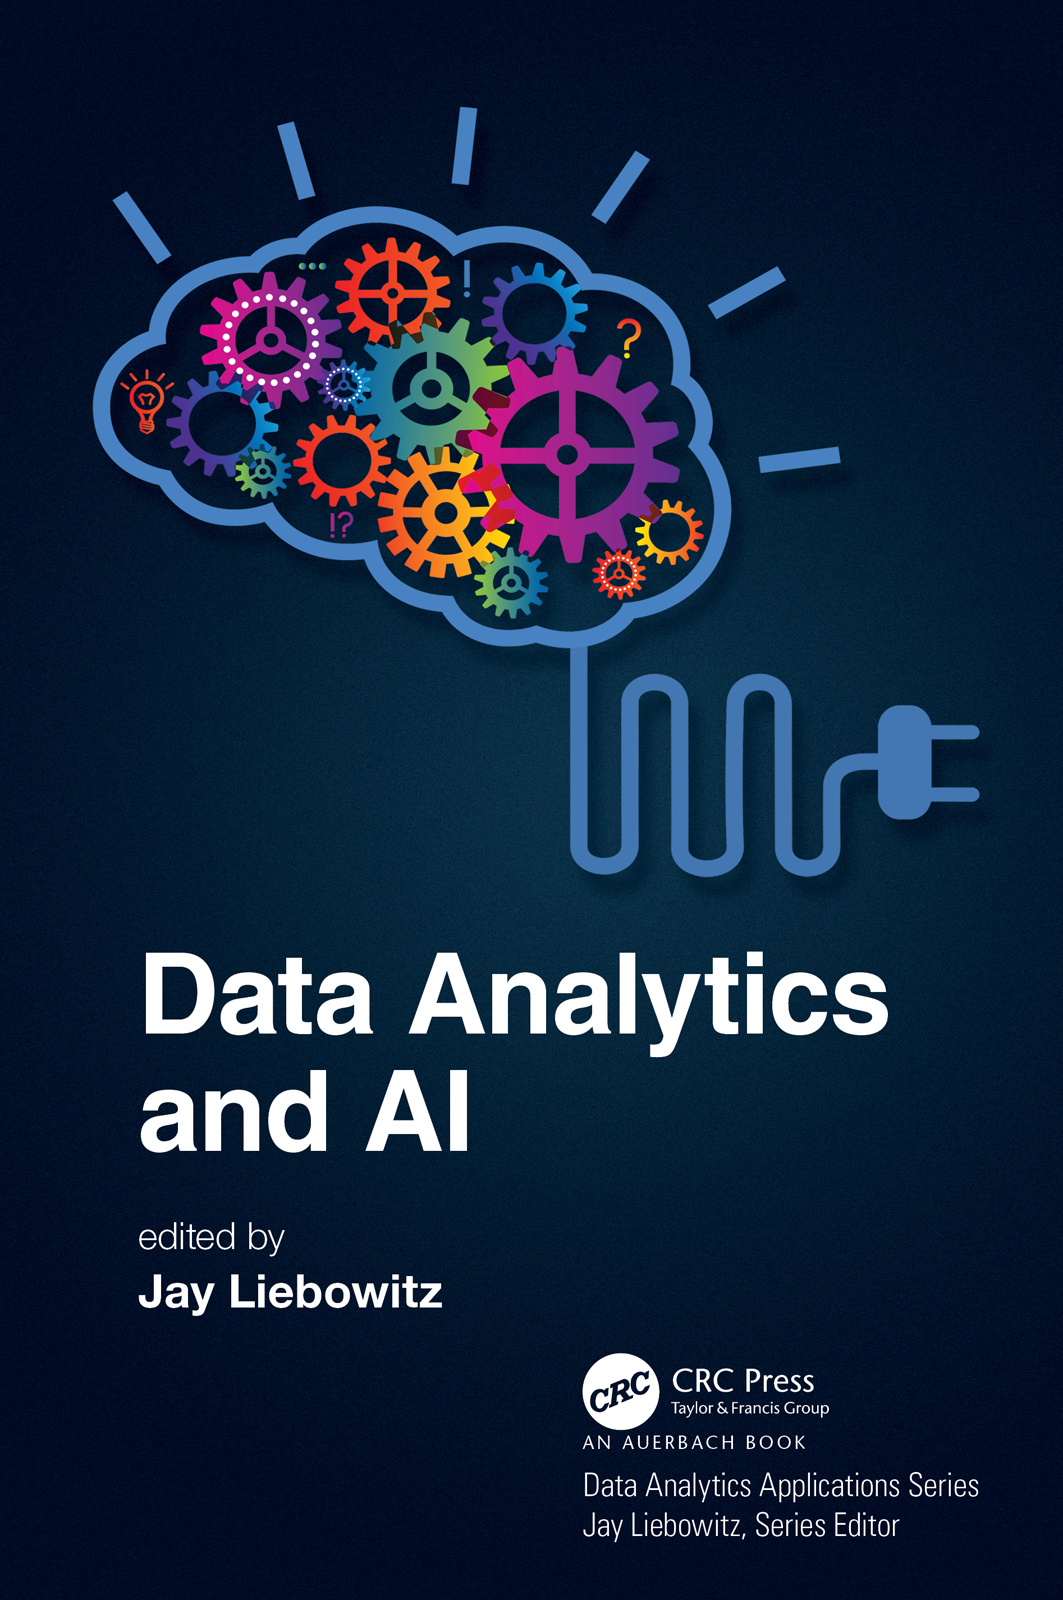 Measurement Issues in the Uncanny Valley: The Interaction between Artificial Intelligence and Data Analytics